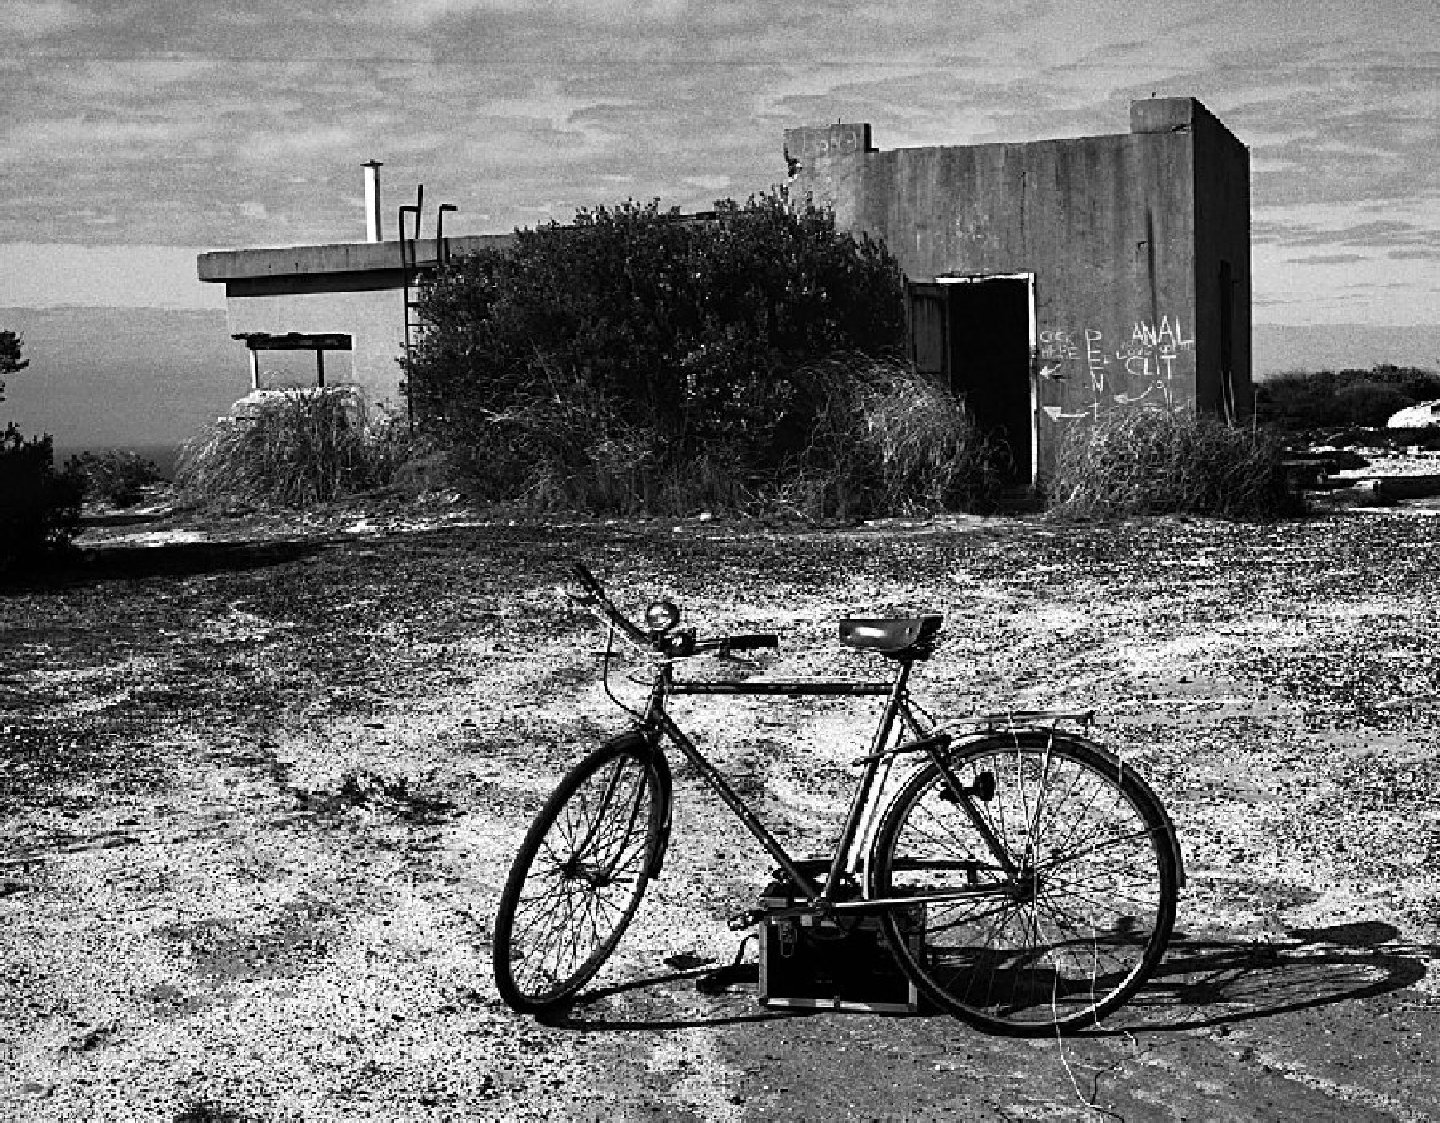 Bunker bicycle by David Perry